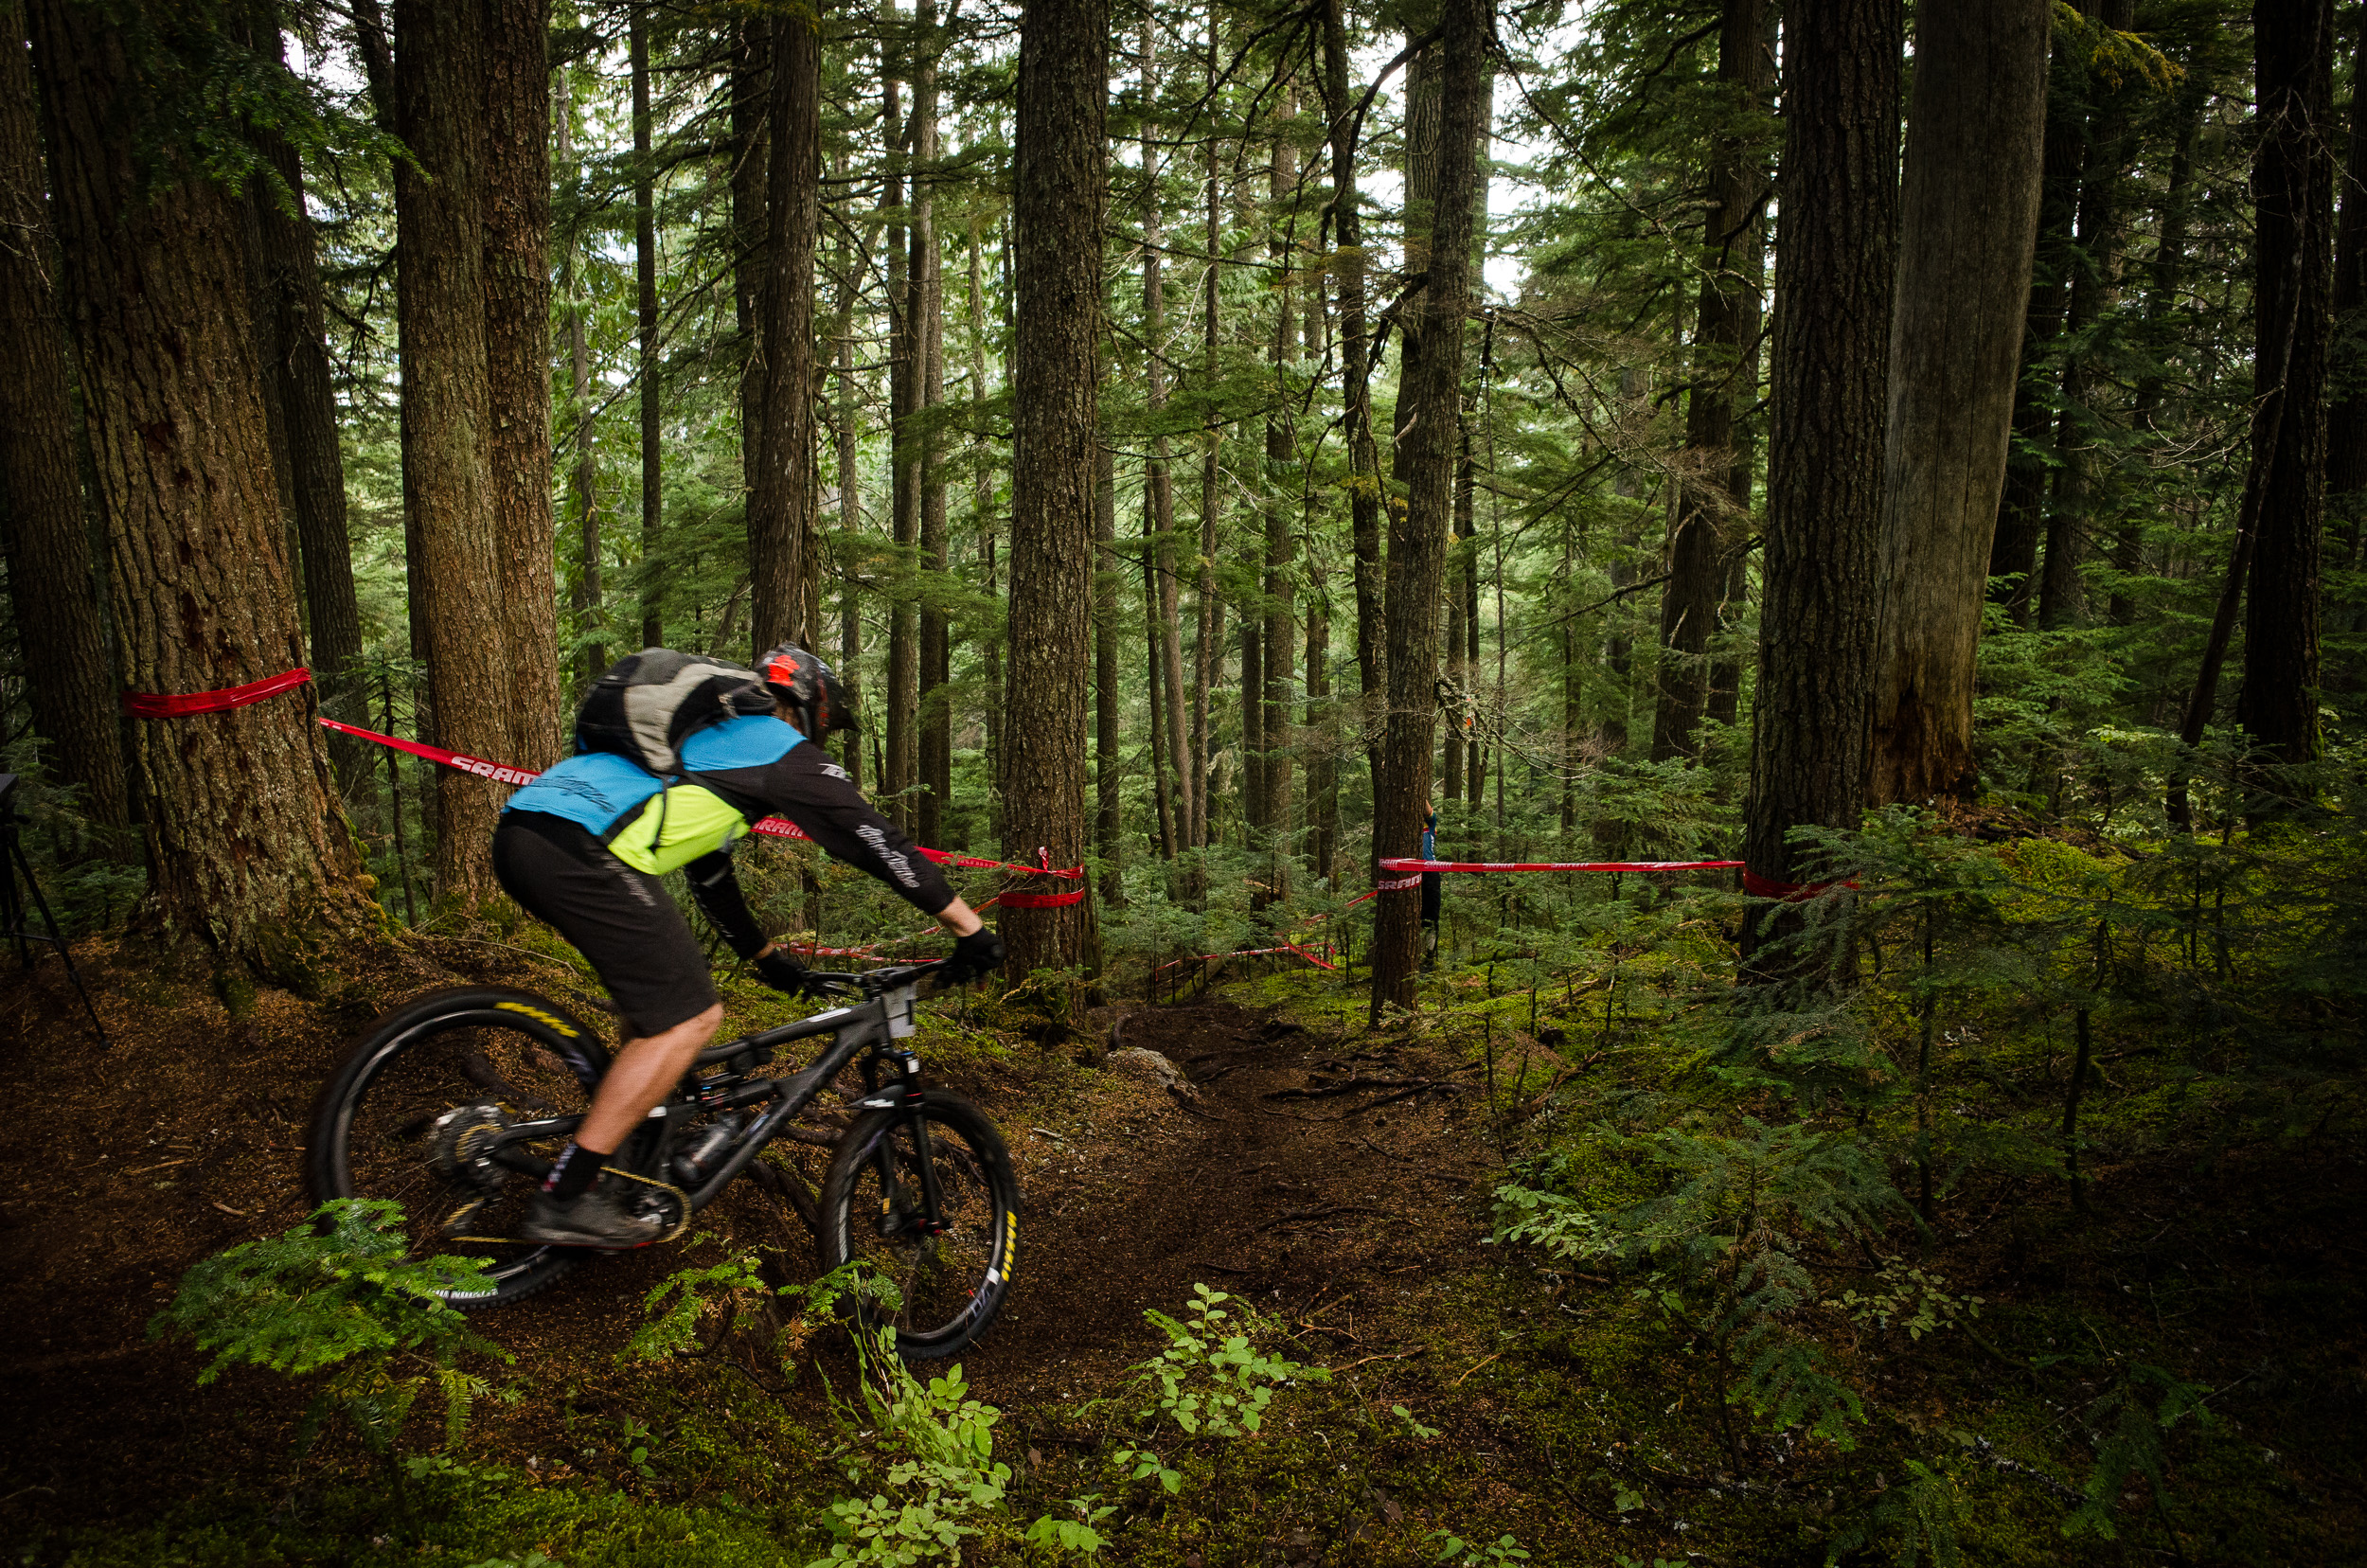 A racer starts Stage 1 of the 2015 Enduro World Series at Whistler in British Columbia.